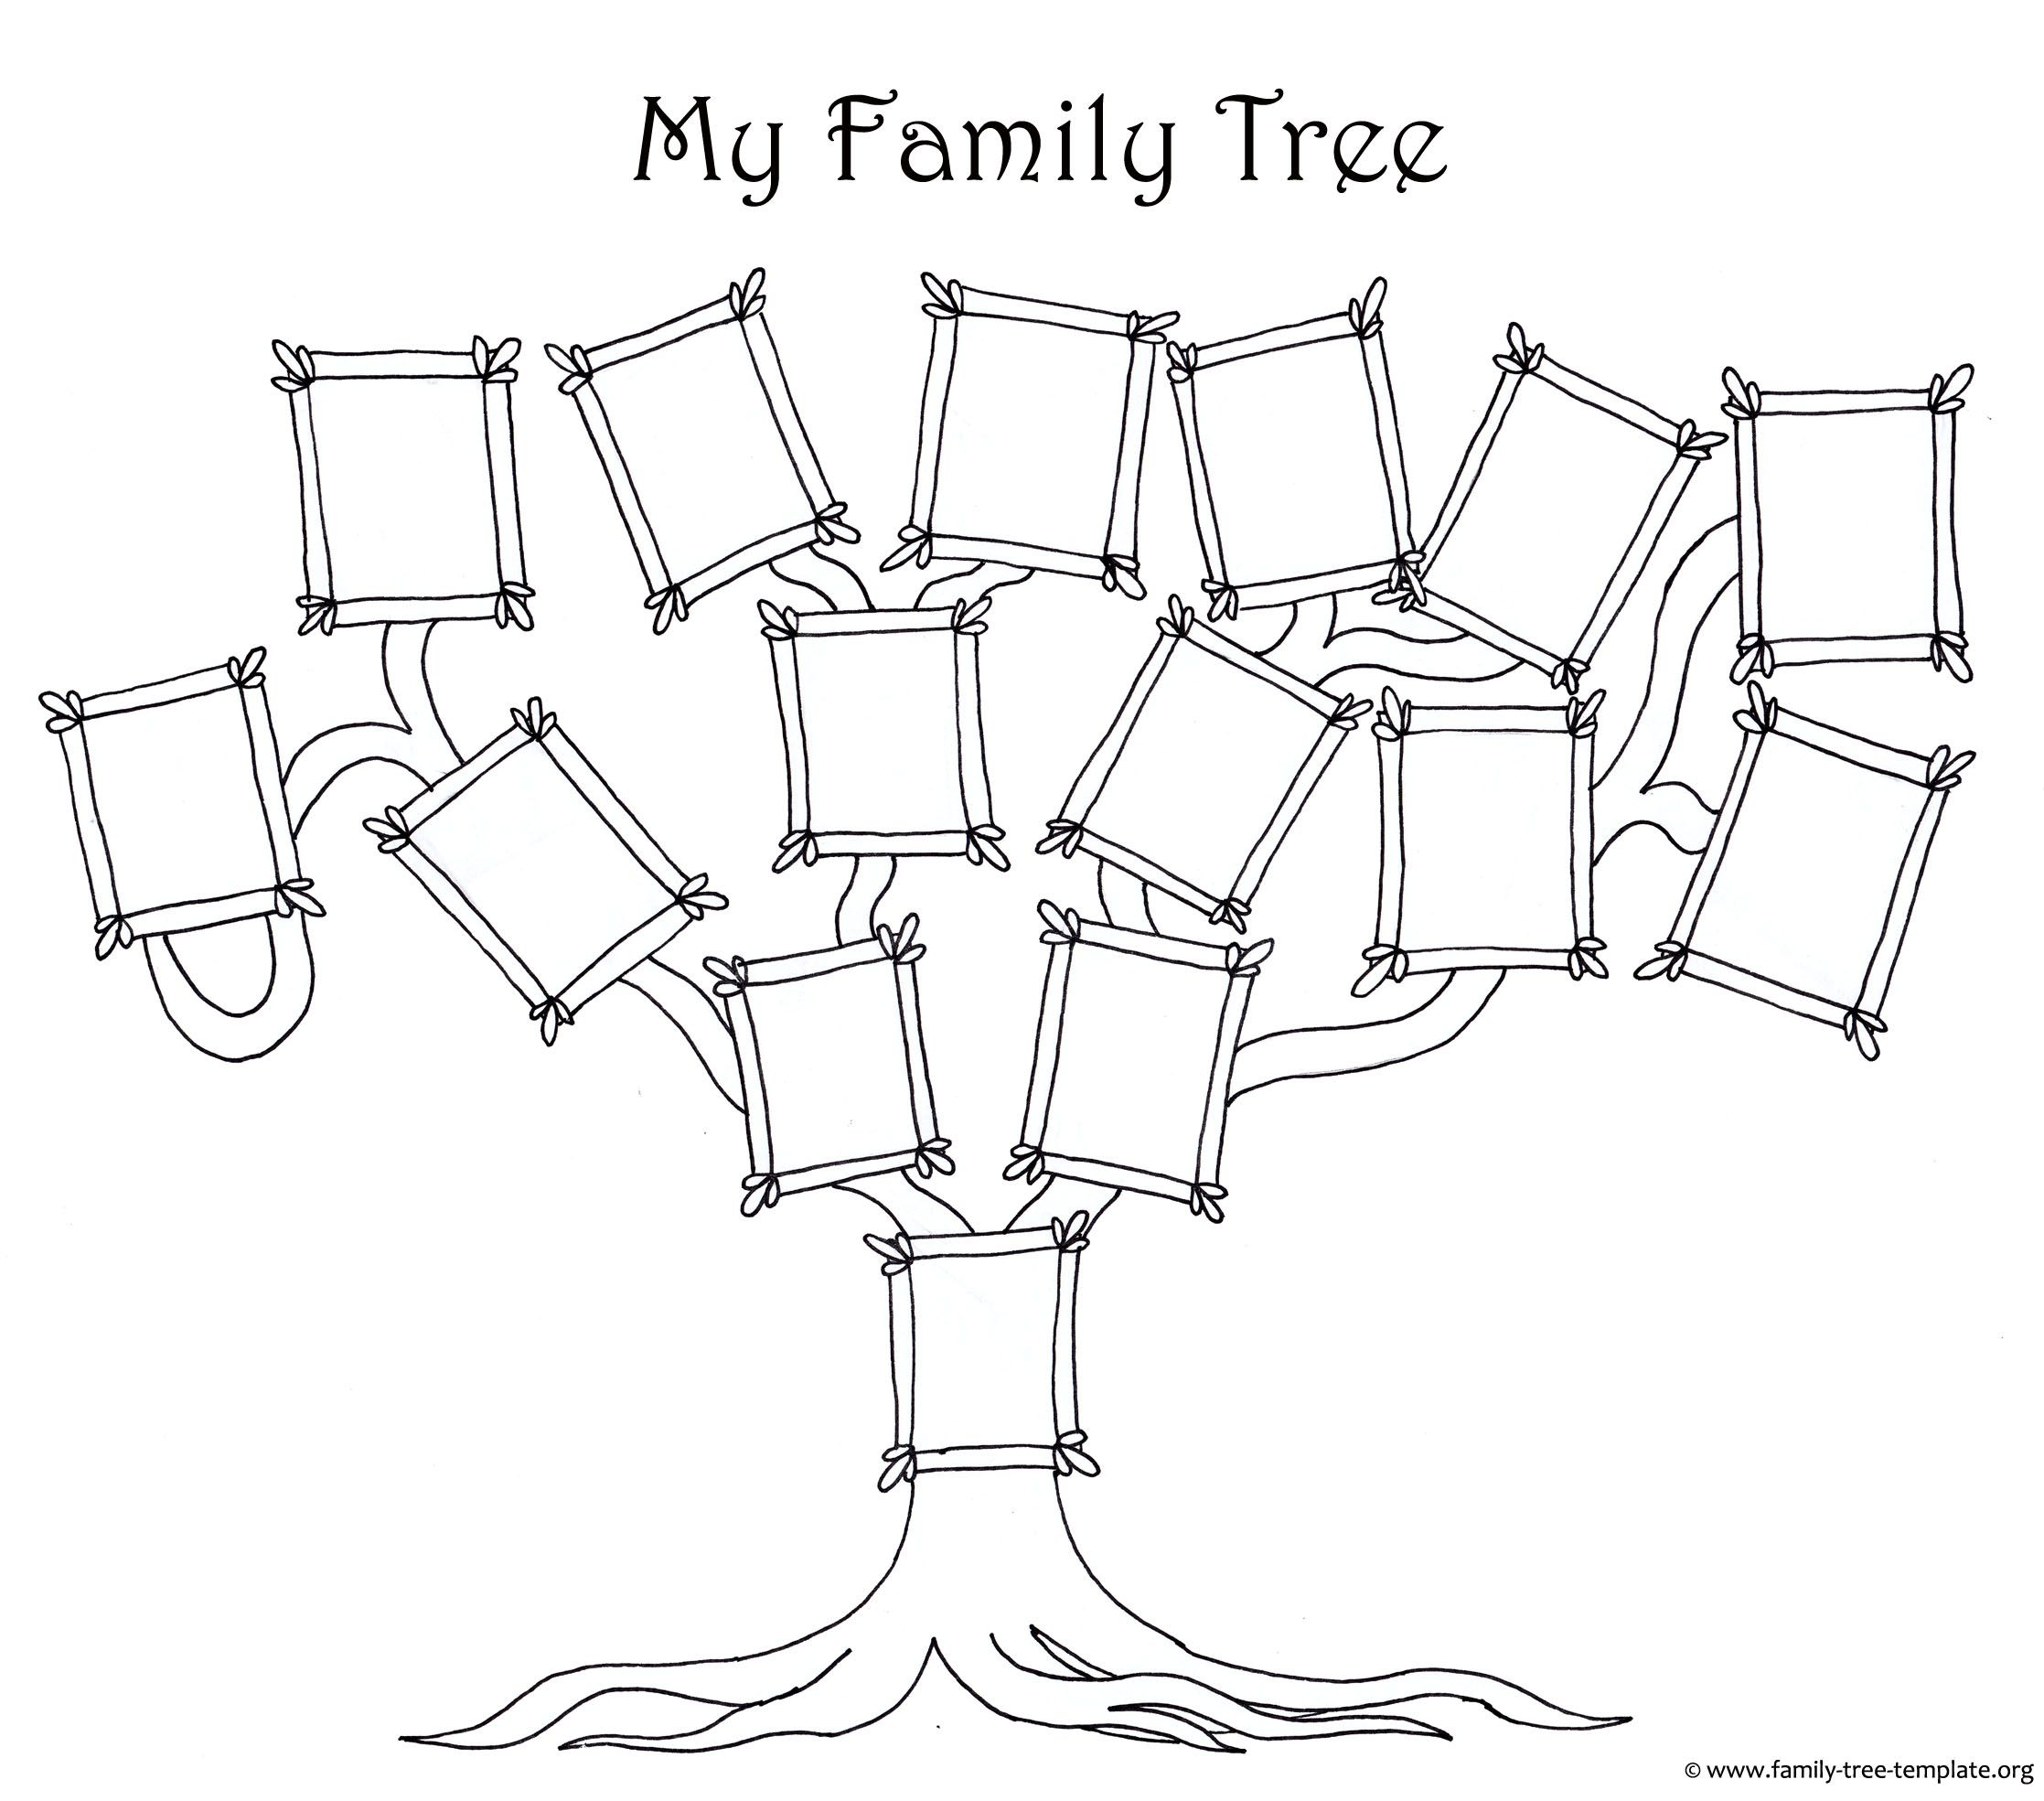 blank tree diagram graphic organizer led light wiring with switch coloring page for kids a simple fun family chart heritage